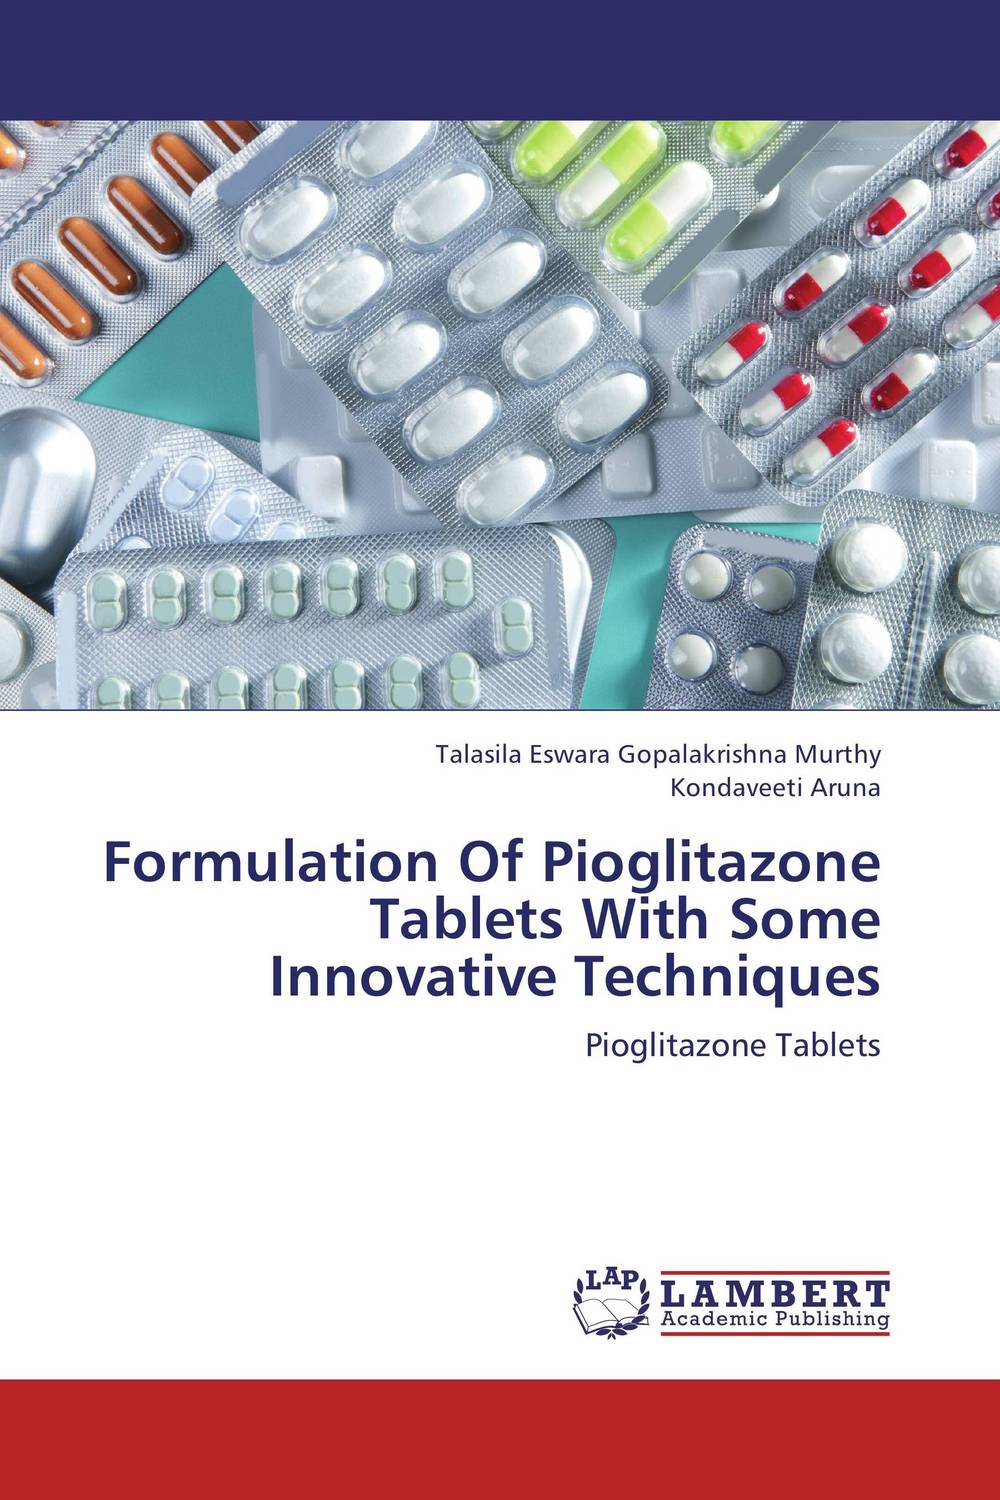 Formulation Of Pioglitazone Tablets With Some Innovative Techniques vipul p patel in vitro dissolution enhancement of felodipine